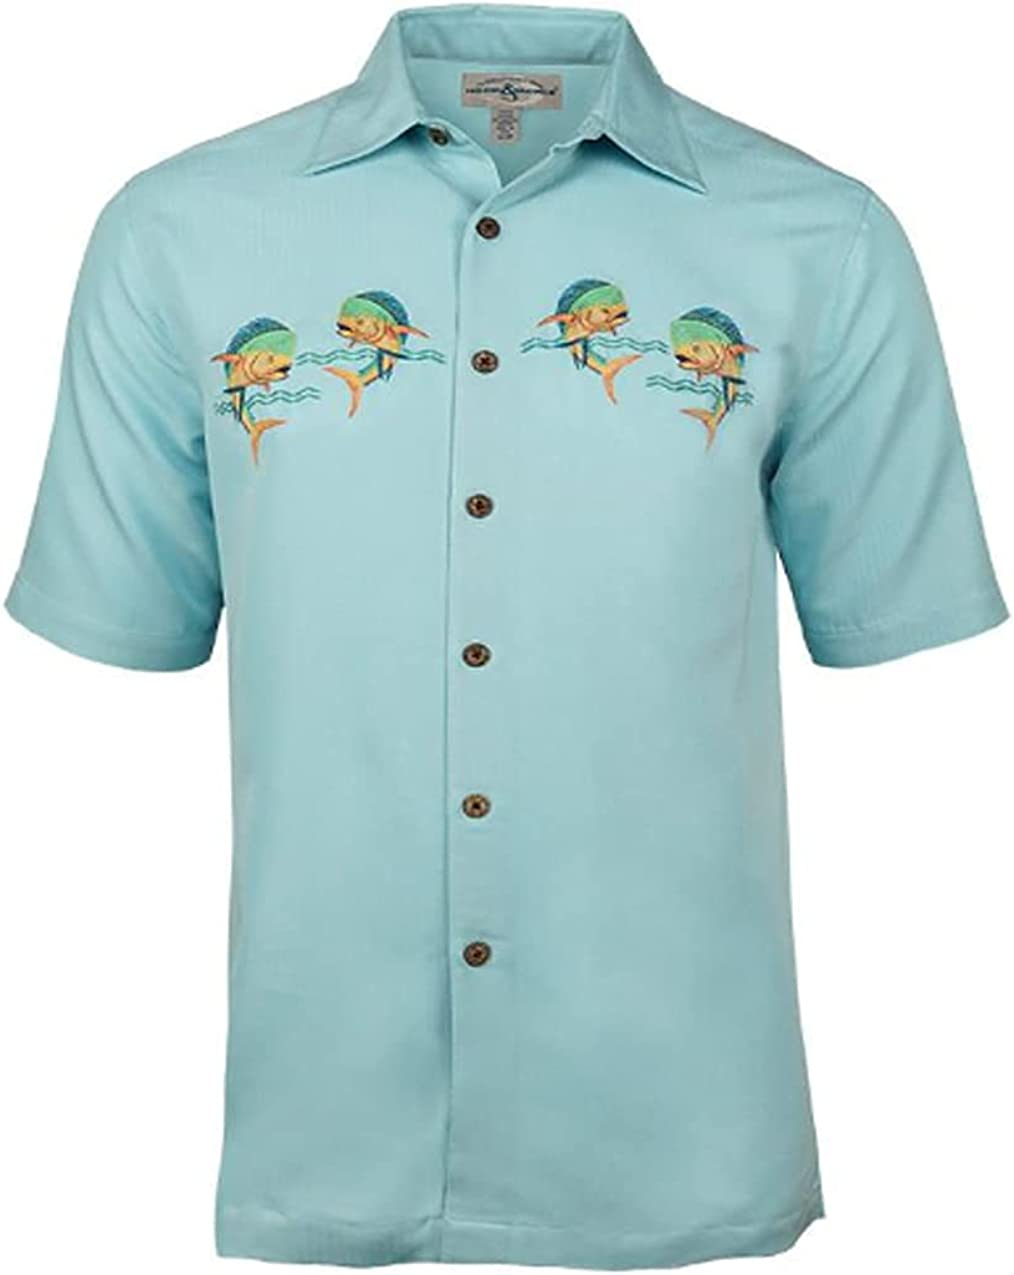 Ranking TOP17 Ranking TOP11 Hook Tackle Men's Let's Fishing Dance Shirt Embroidered